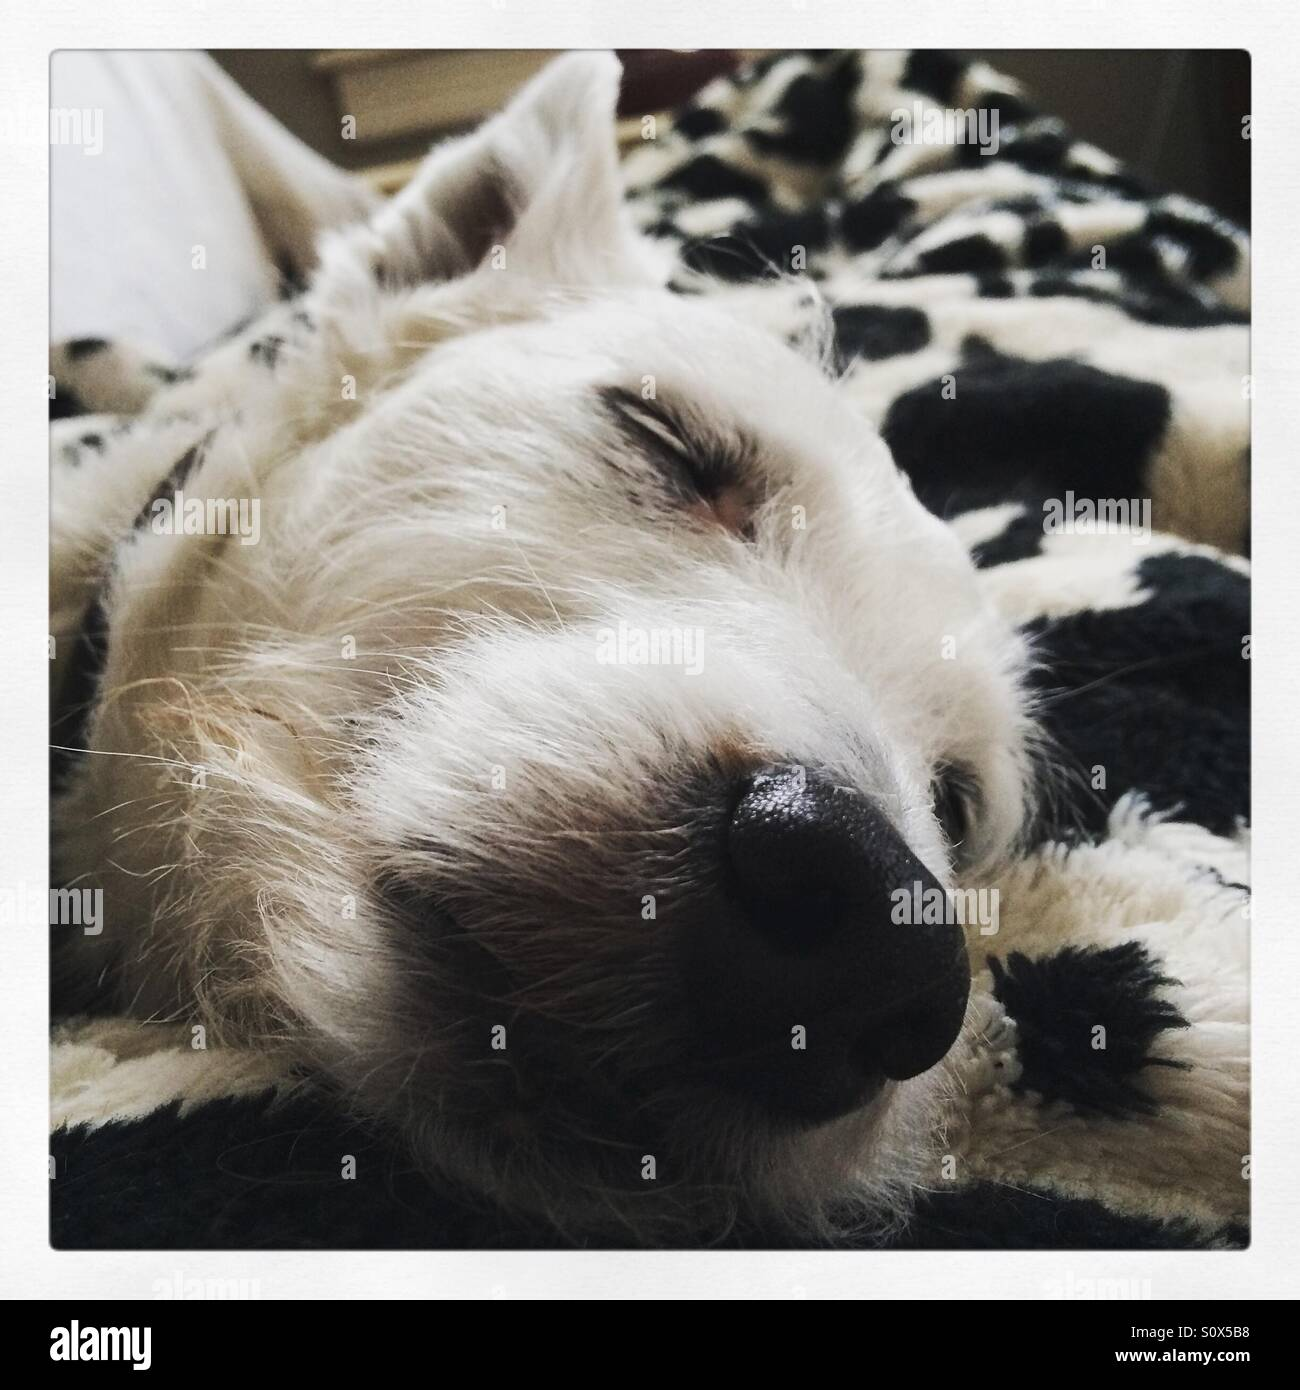 Jack Russell terrier face sleeping - Stock Image